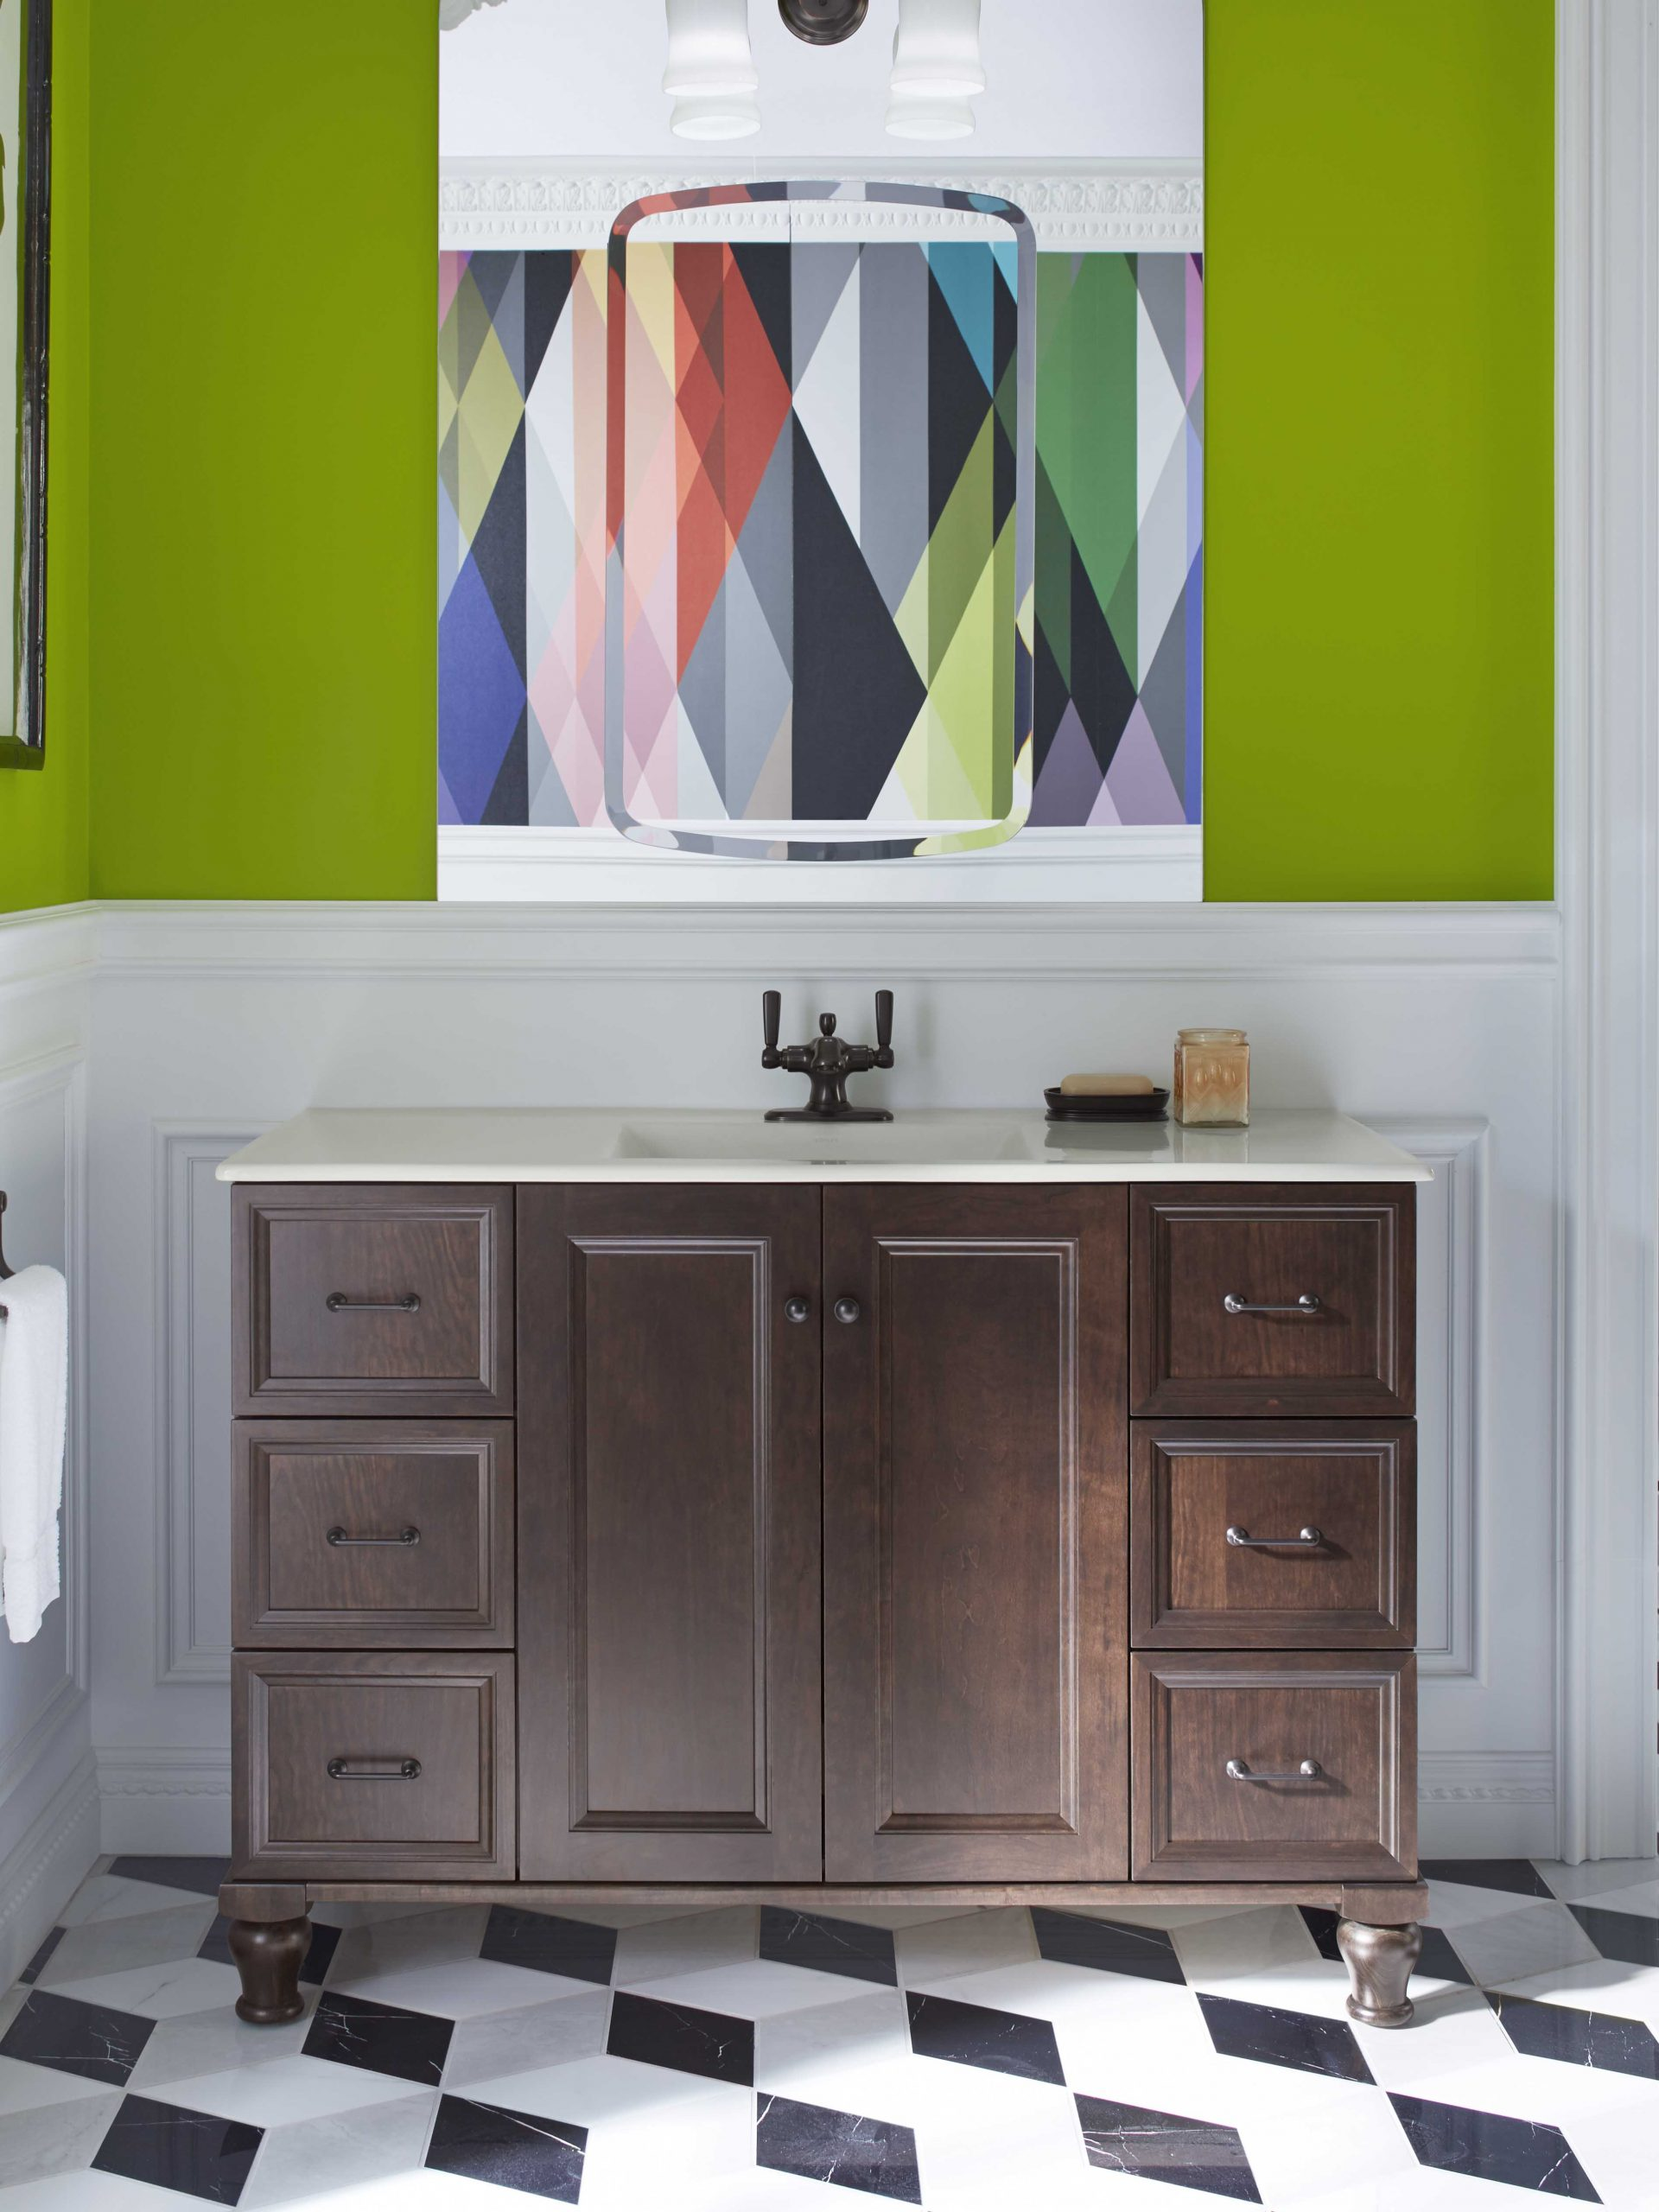 Pop Art style bathroom with olive green walls and black and white diamond floor tiles